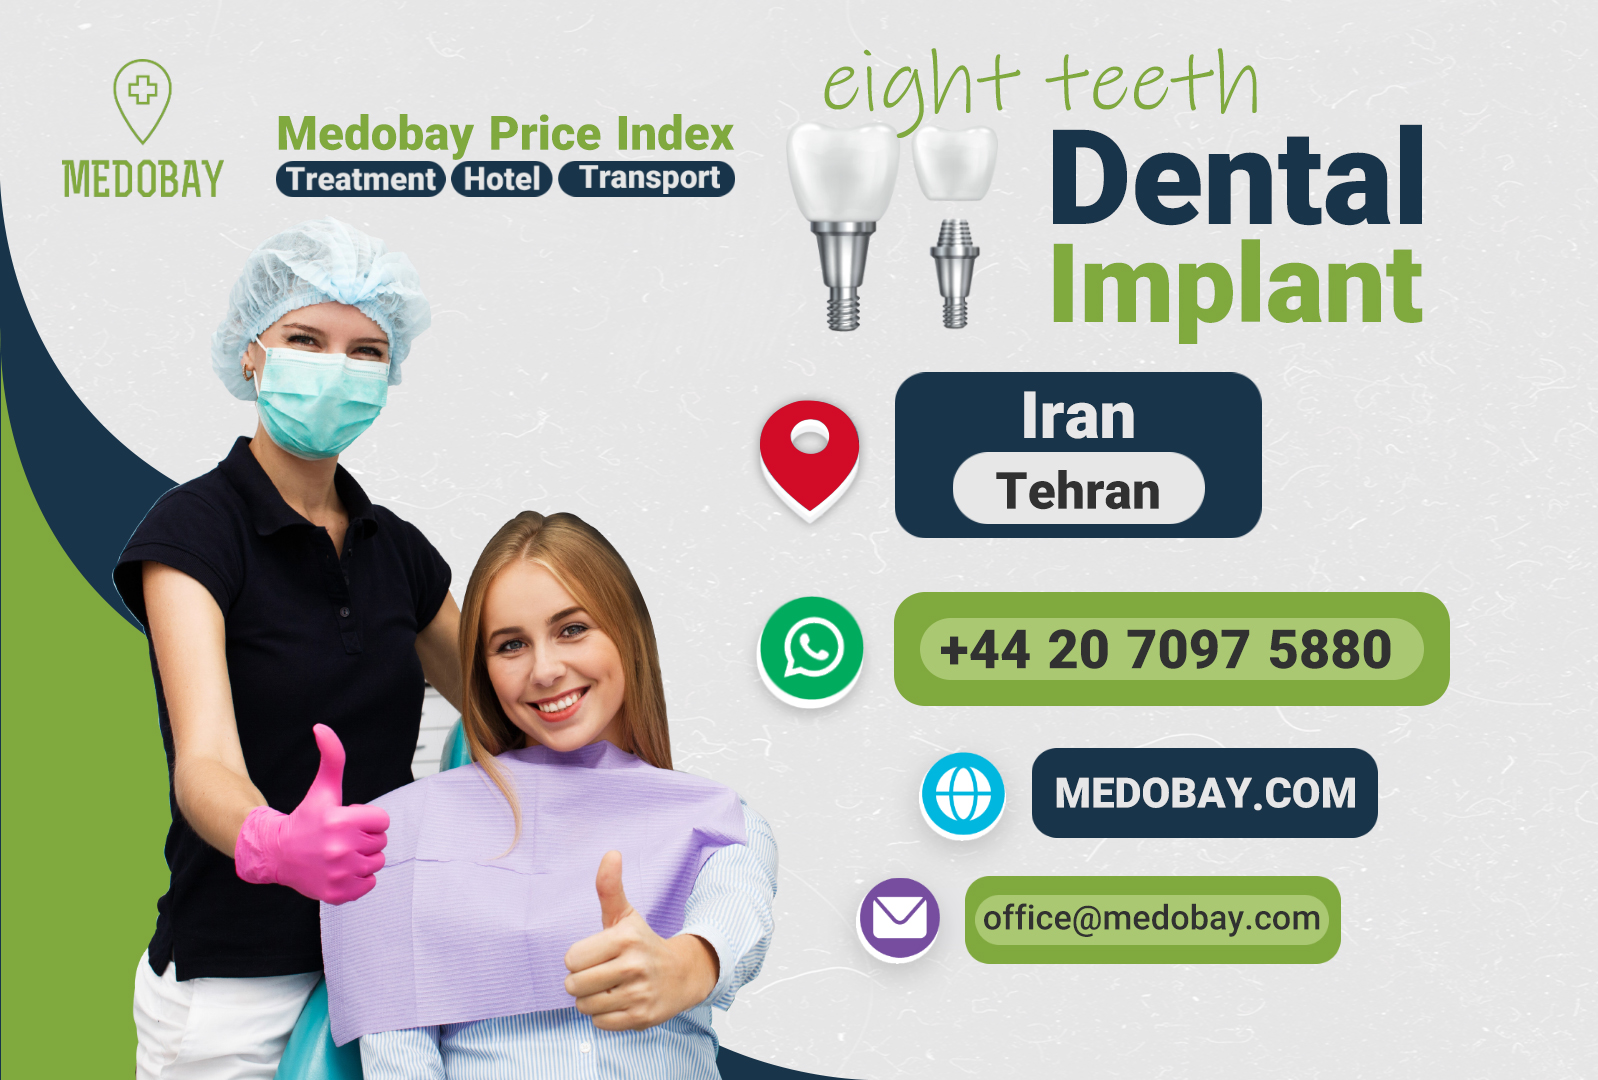 Eight Teeth Dental Implant Tehran